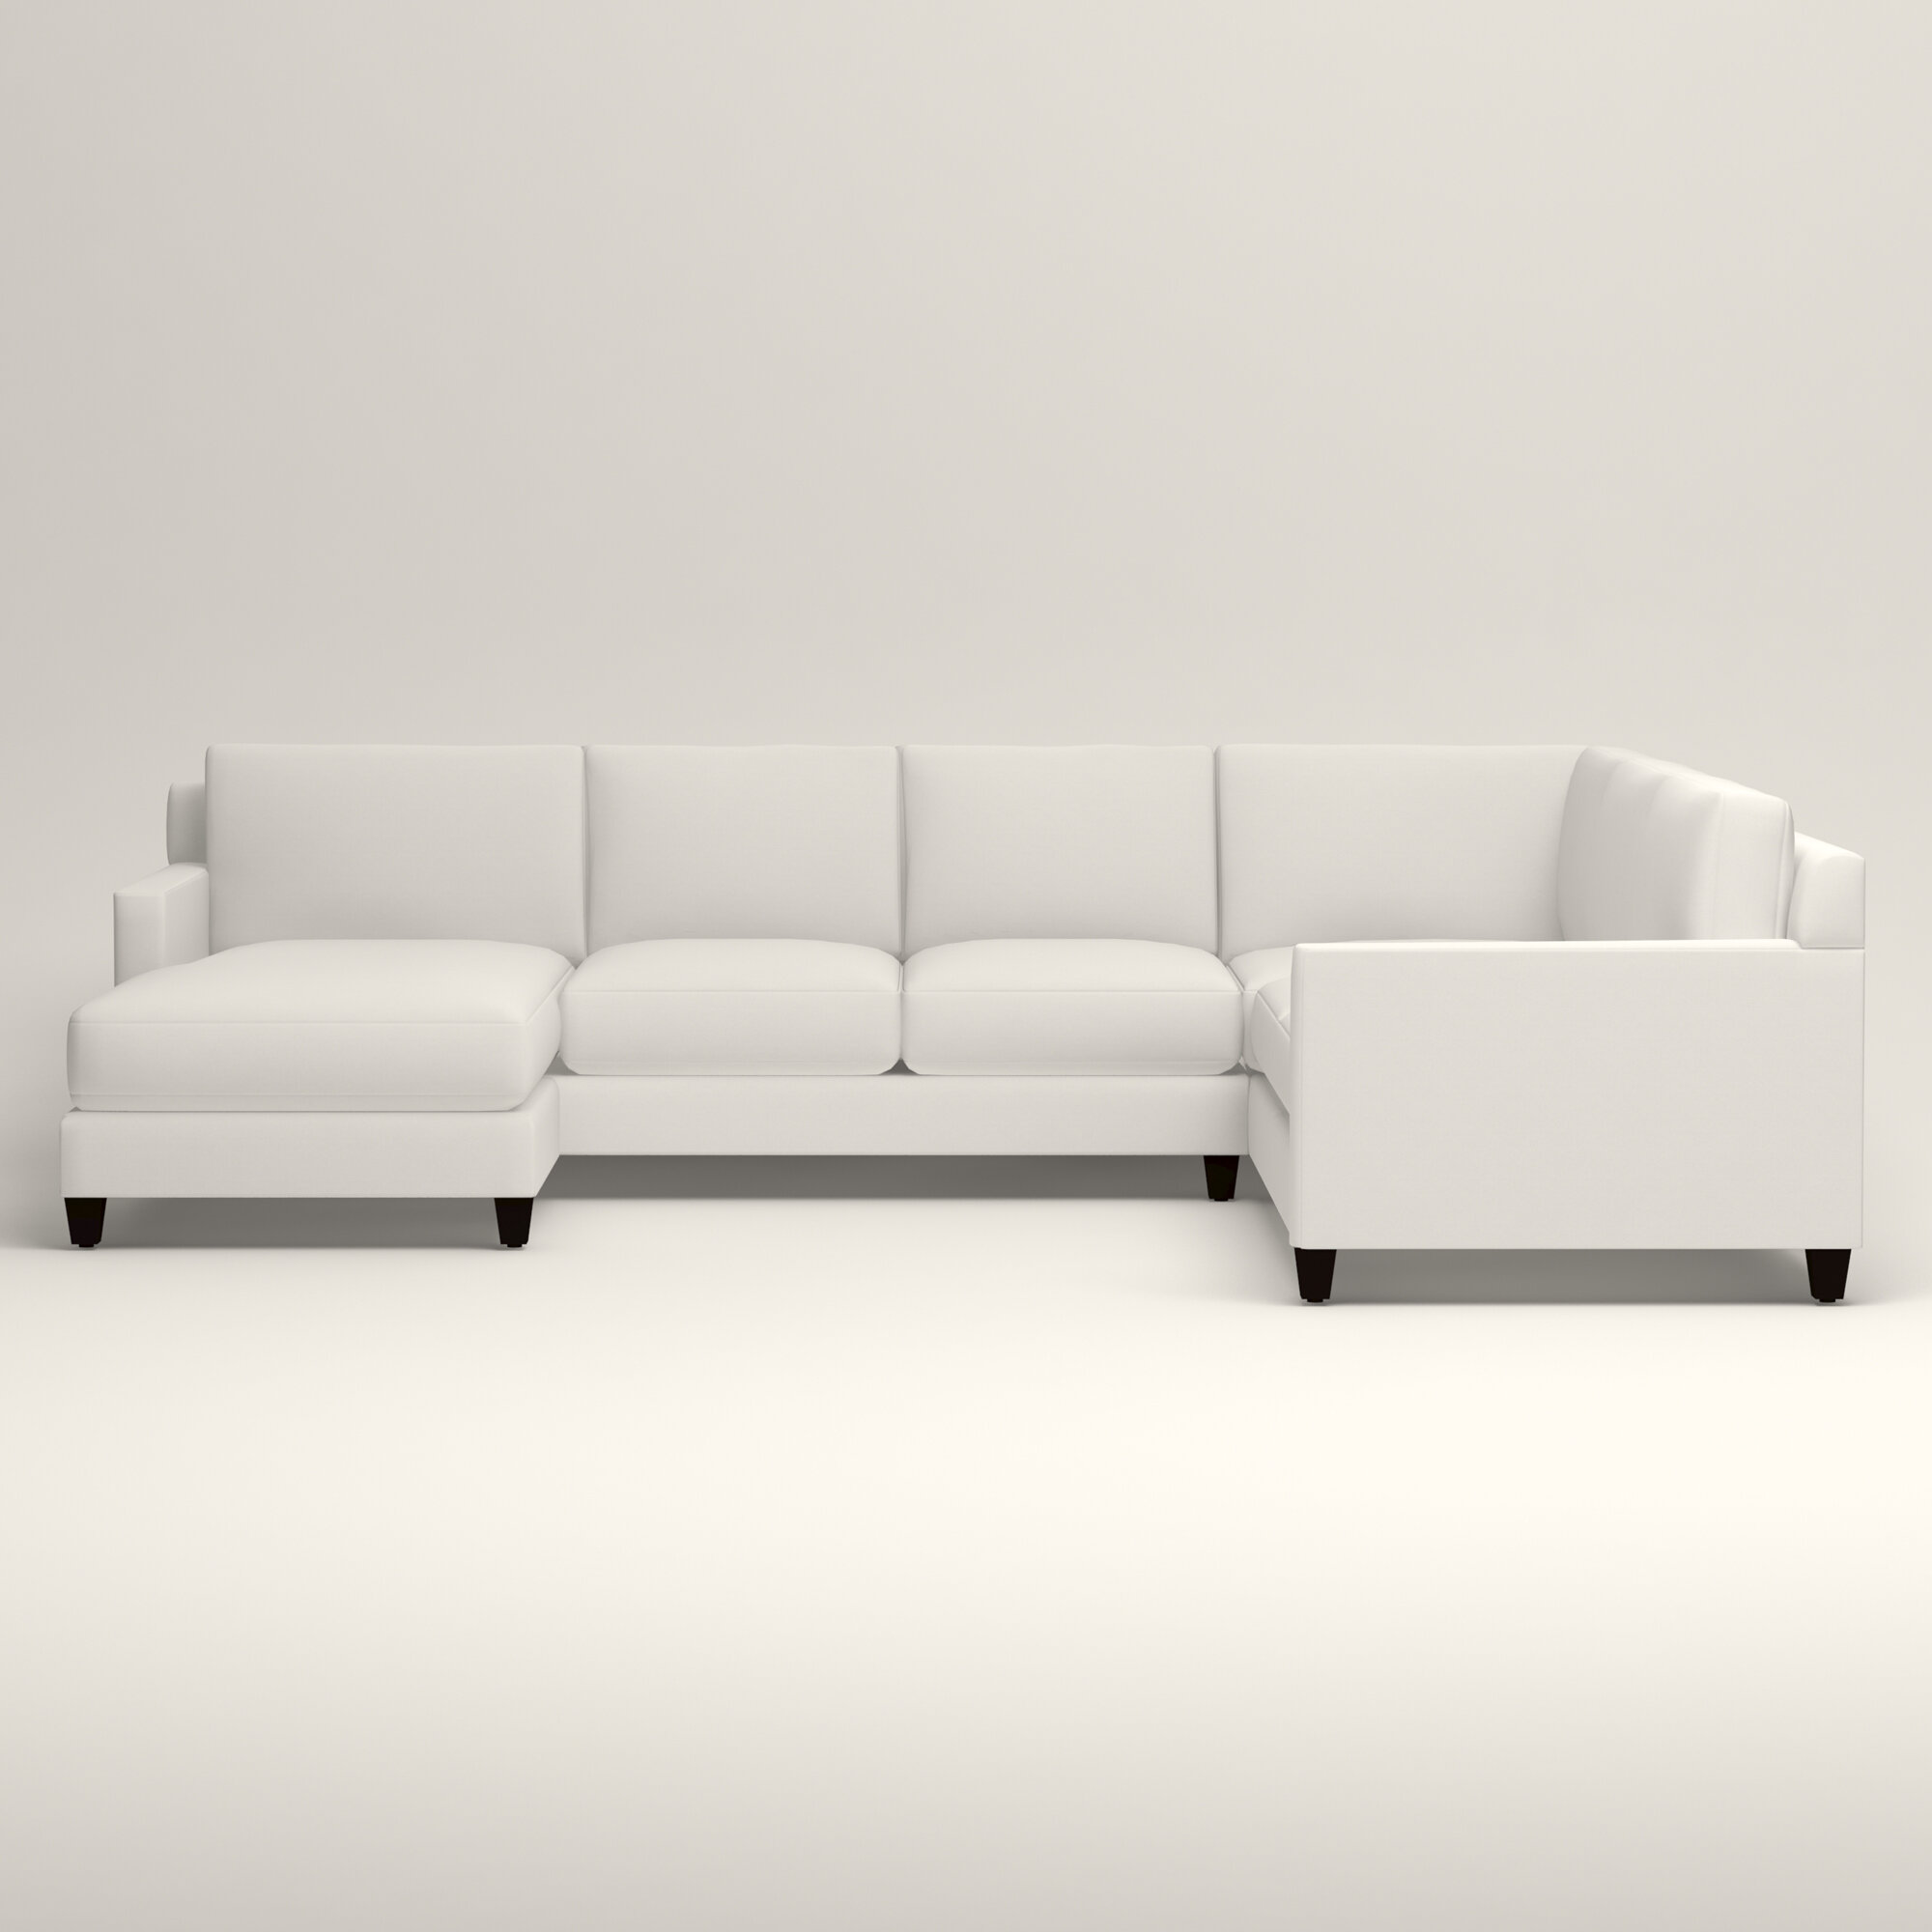 Groovy Sectional Sofa Buying Guide Wayfair Bralicious Painted Fabric Chair Ideas Braliciousco